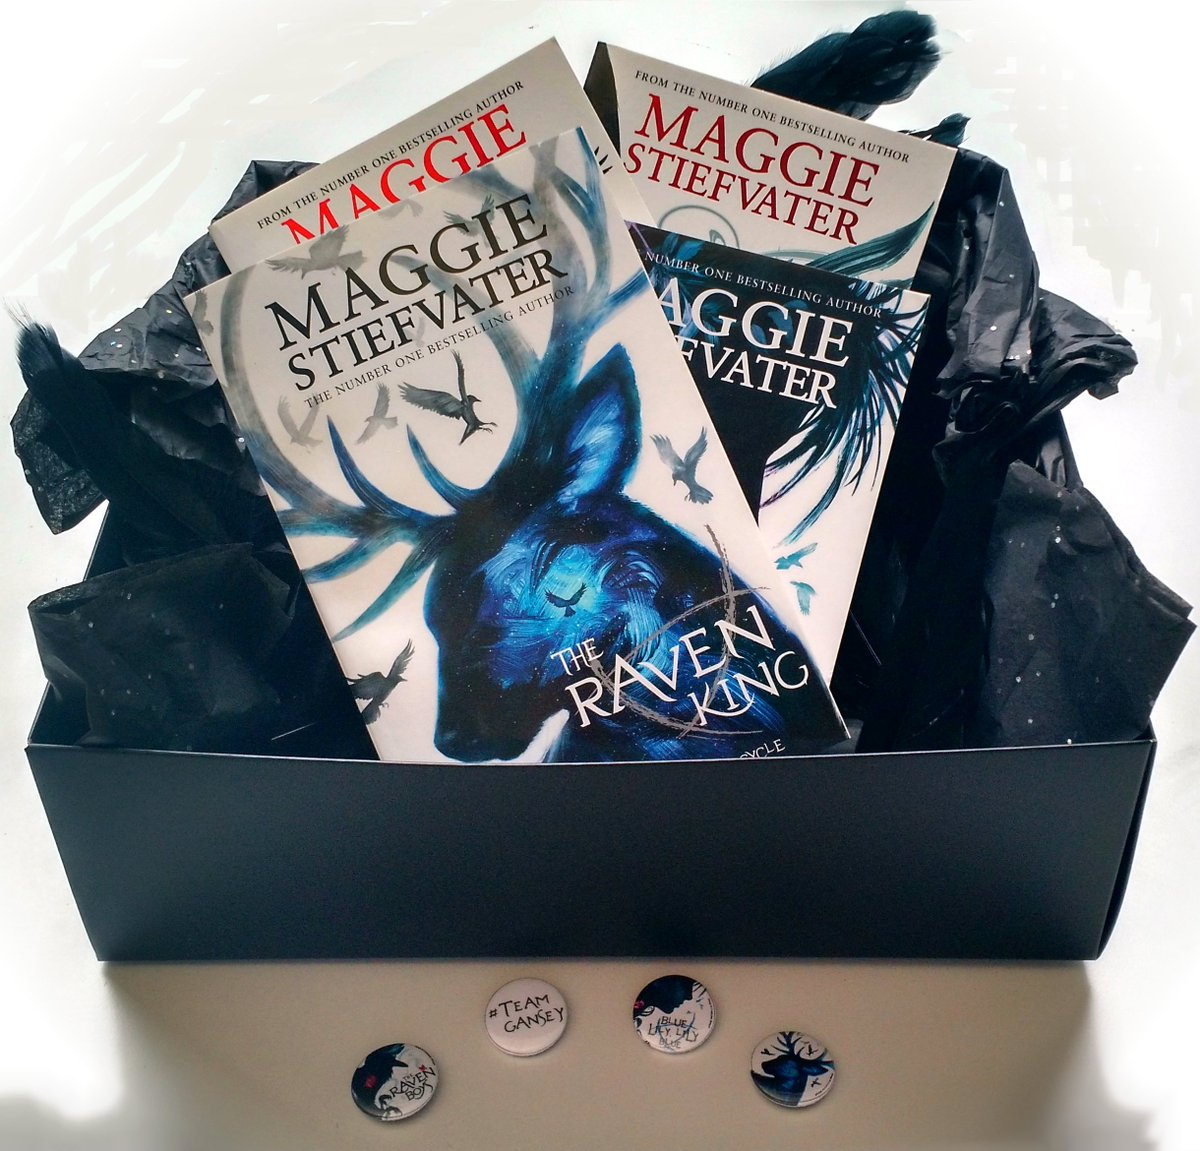 Who really wanted one of these exclusive Raven Cycle bundles? RT by midnight on Sunday to win! #RavenKing https://t.co/w6ZCxqlKYD